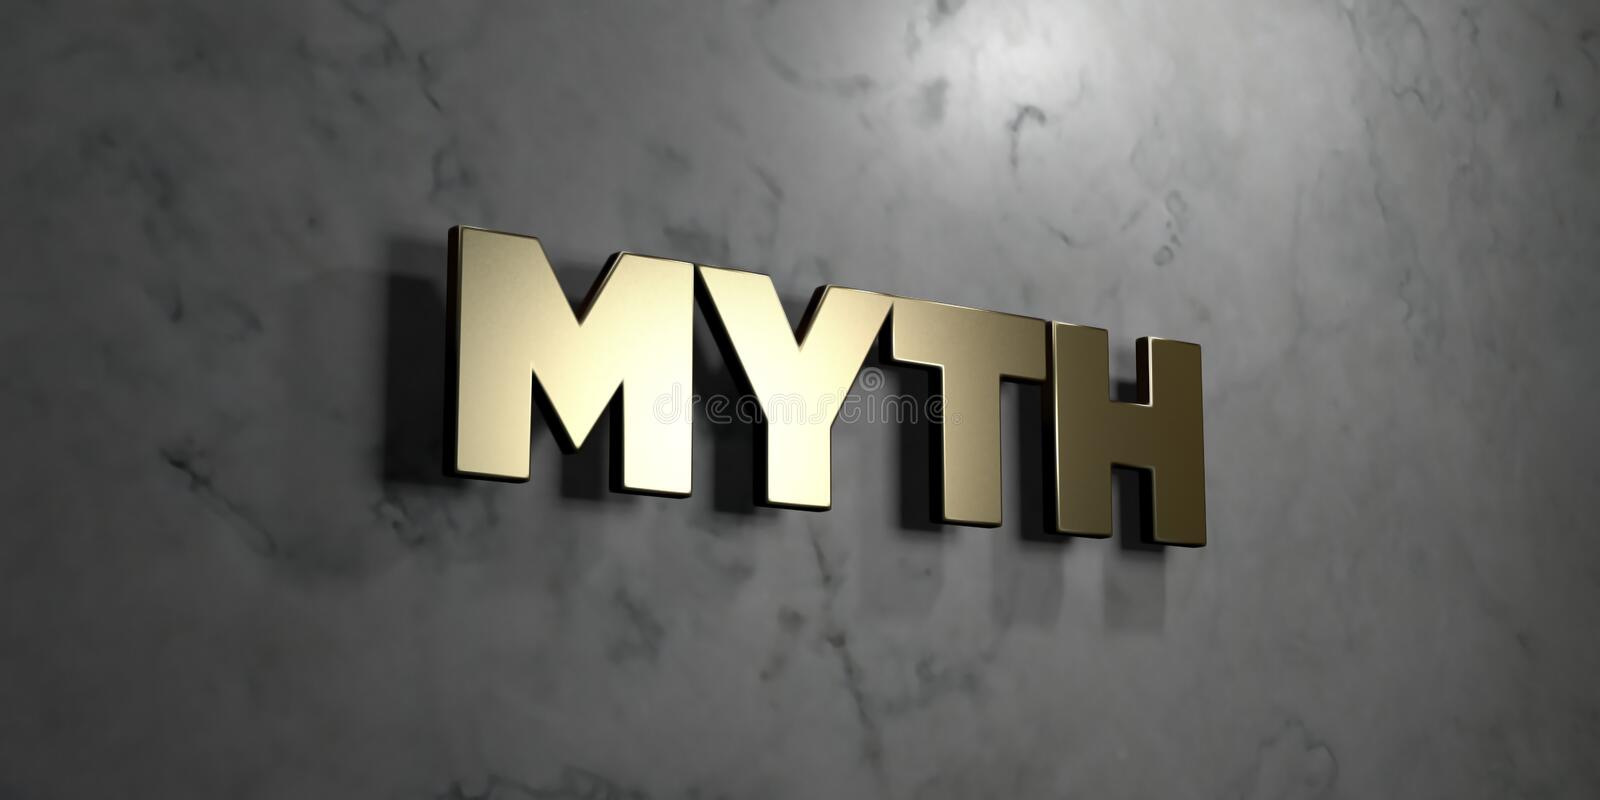 Myth - Gold sign mounted on glossy marble wall - 3D rendered royalty free stock illustration vector illustration